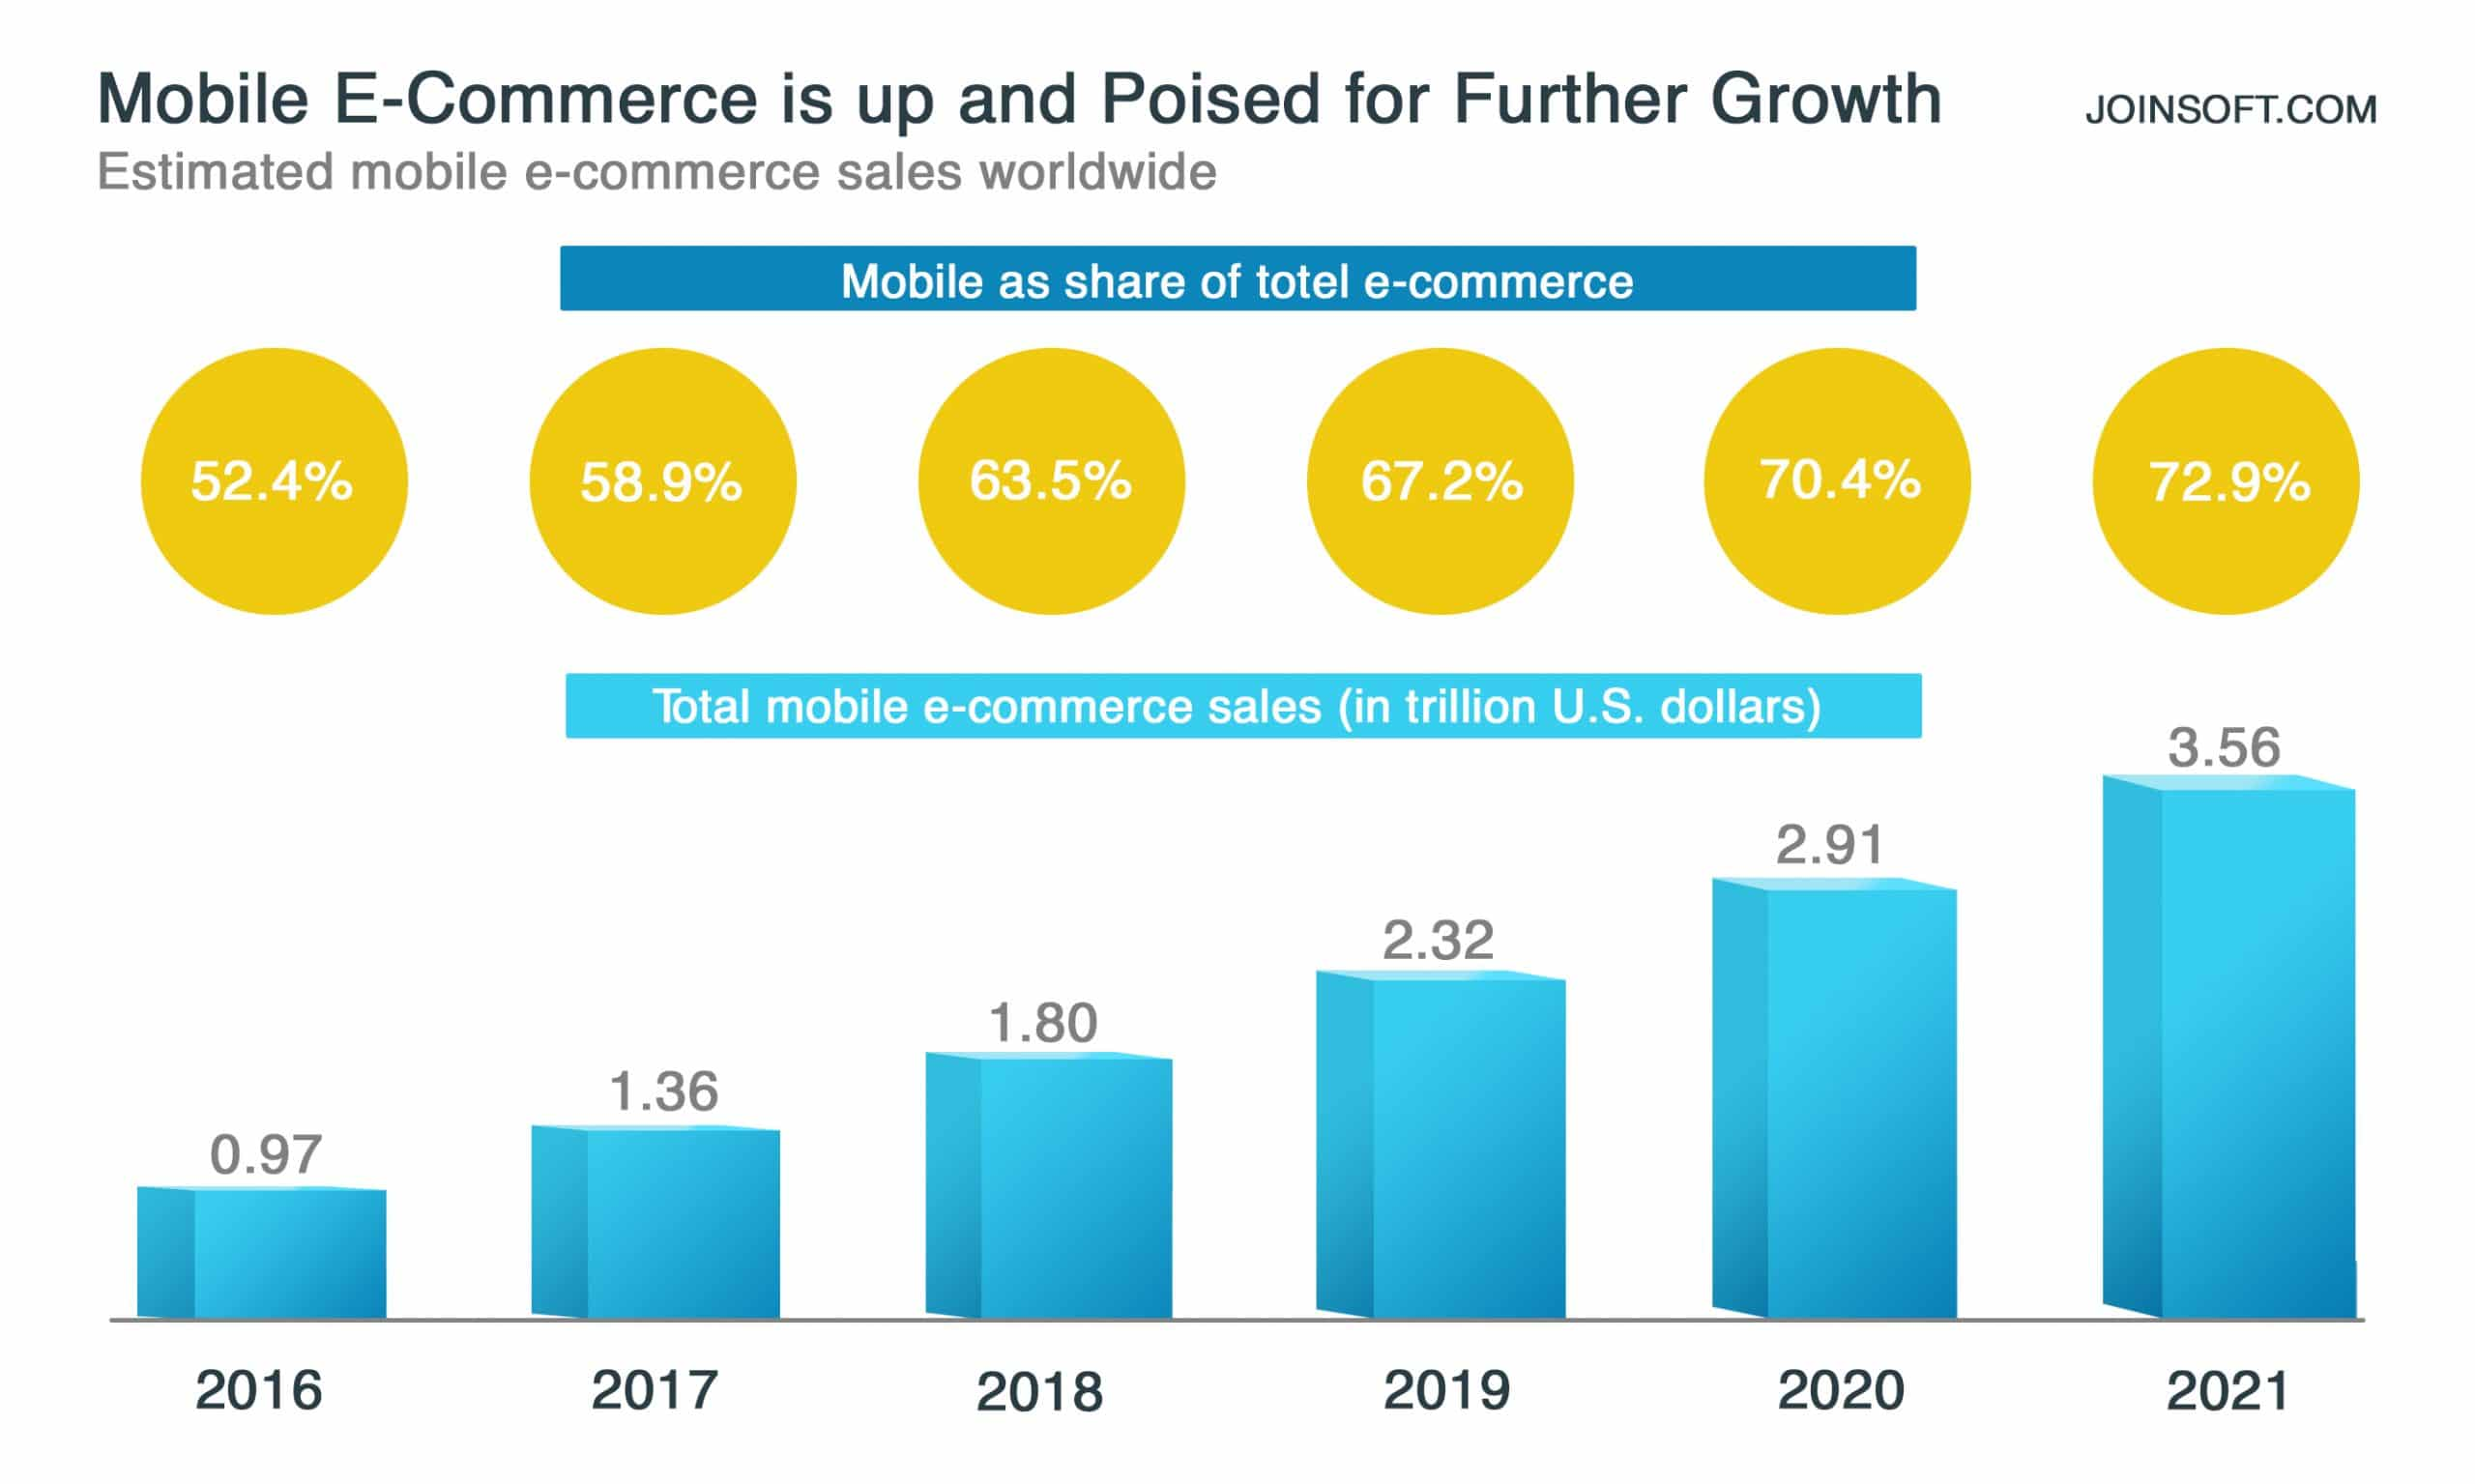 Mobile E-Commerce is up and Poised for Futher Growth